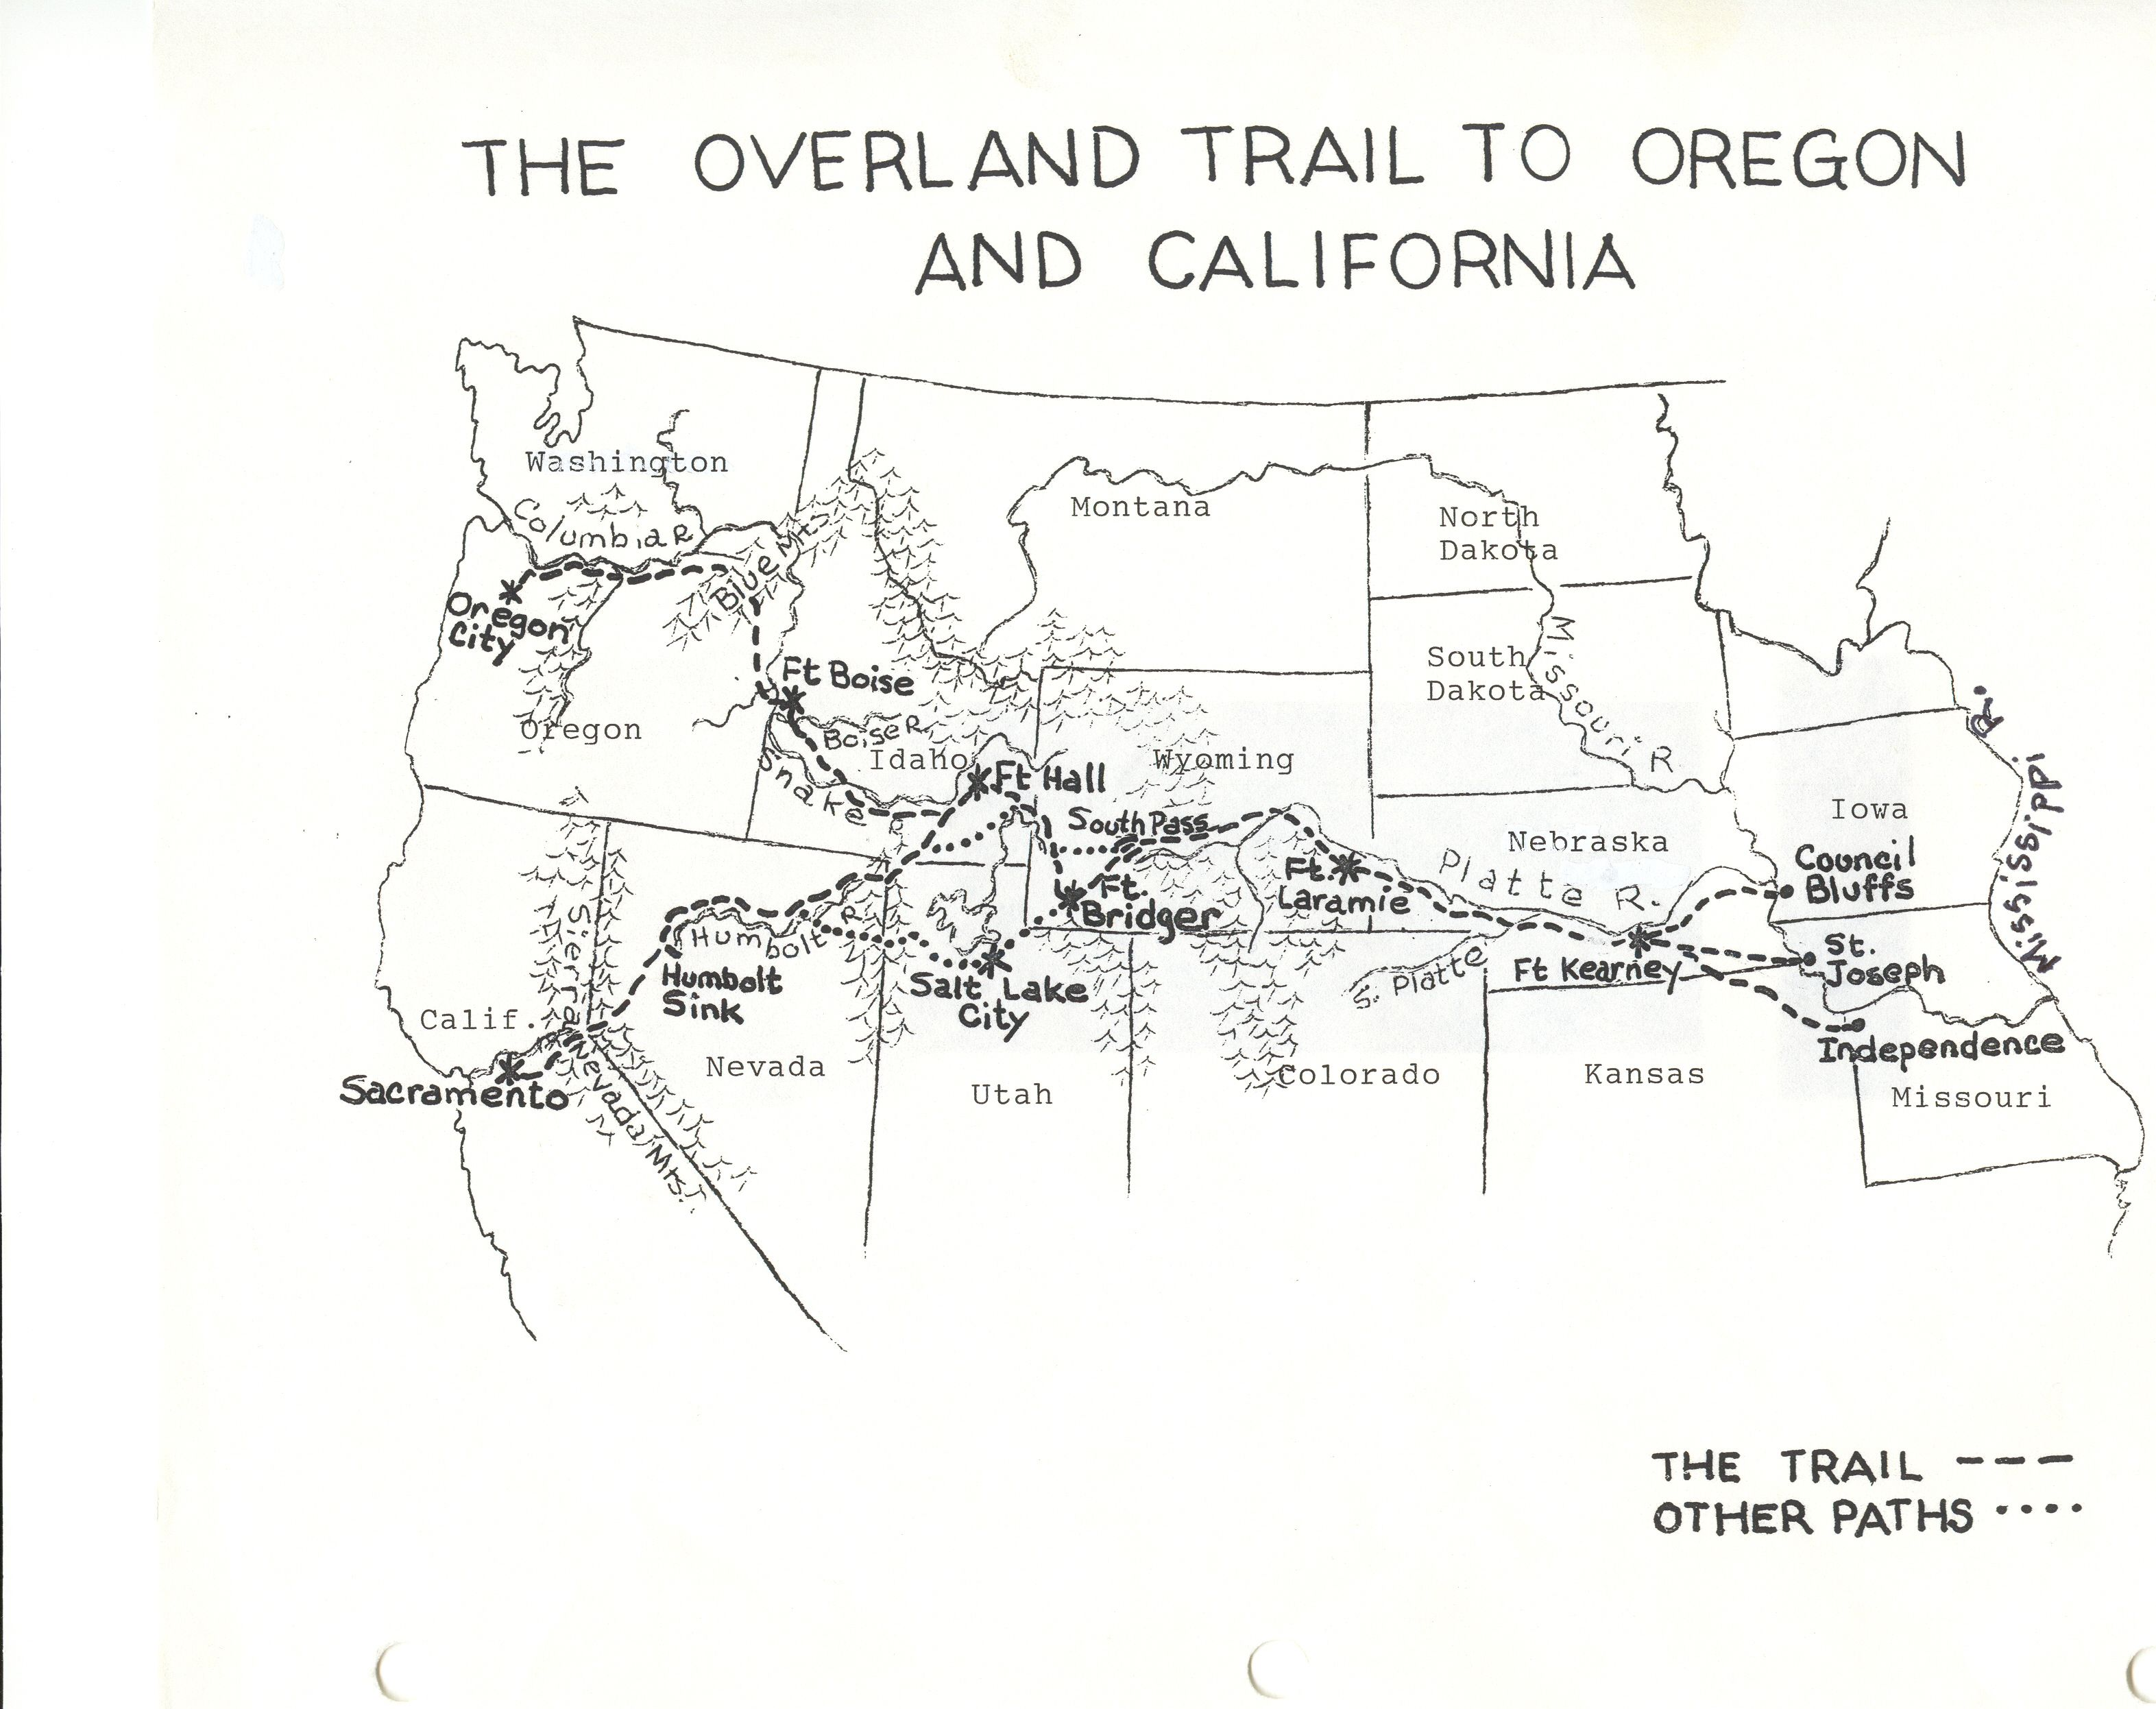 Large Oregon Trail Map Homeschool History US Early Pinterest - Us trails map quiz